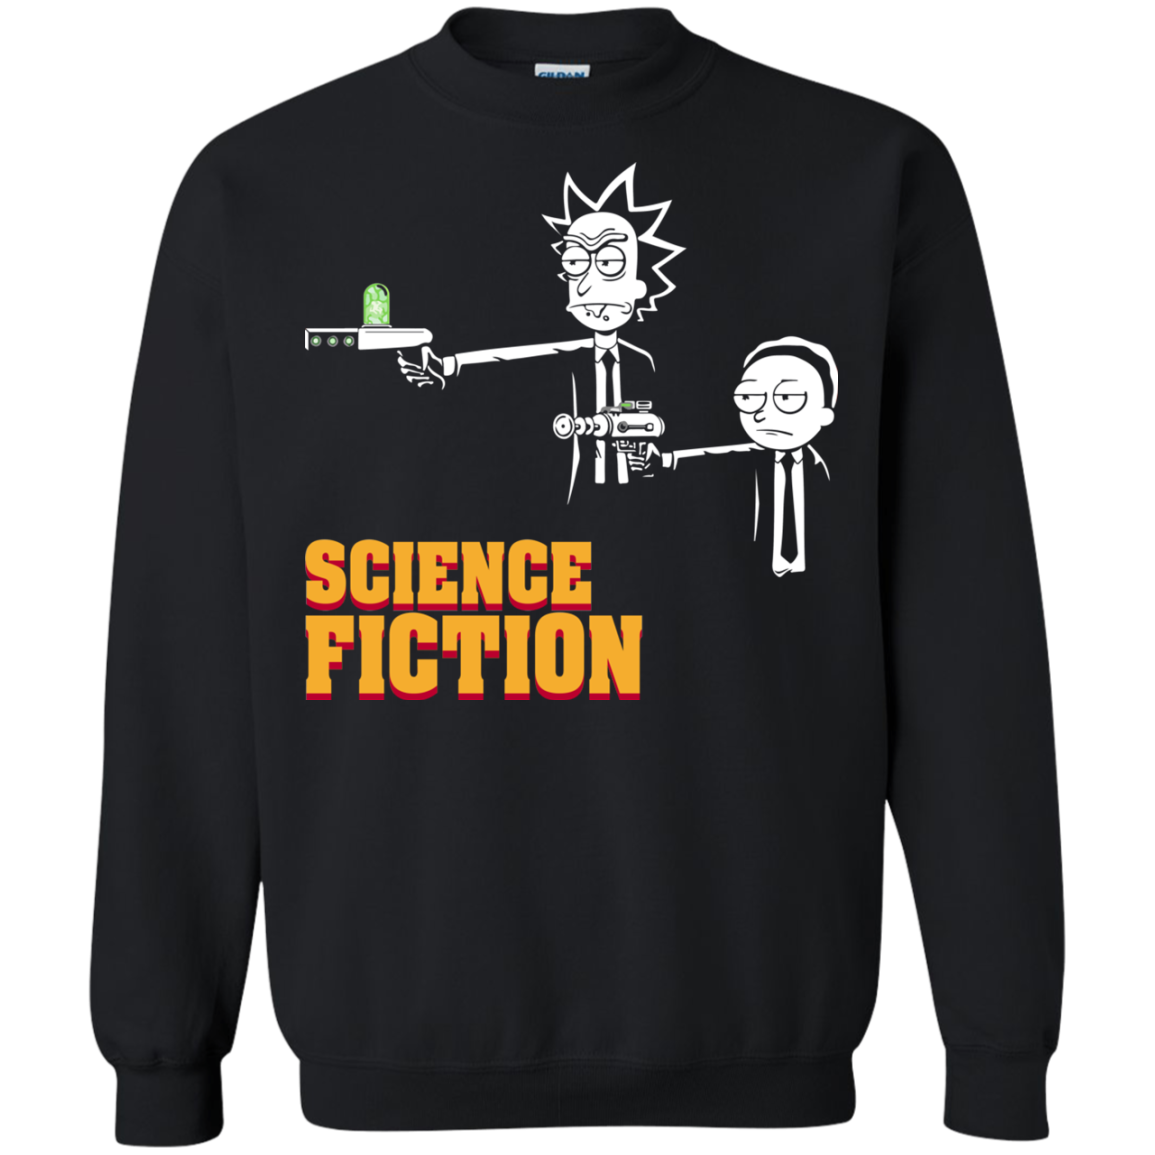 Science Fiction Rick and Morty Pulp Fiction T-shirt, Hoodie, Tank